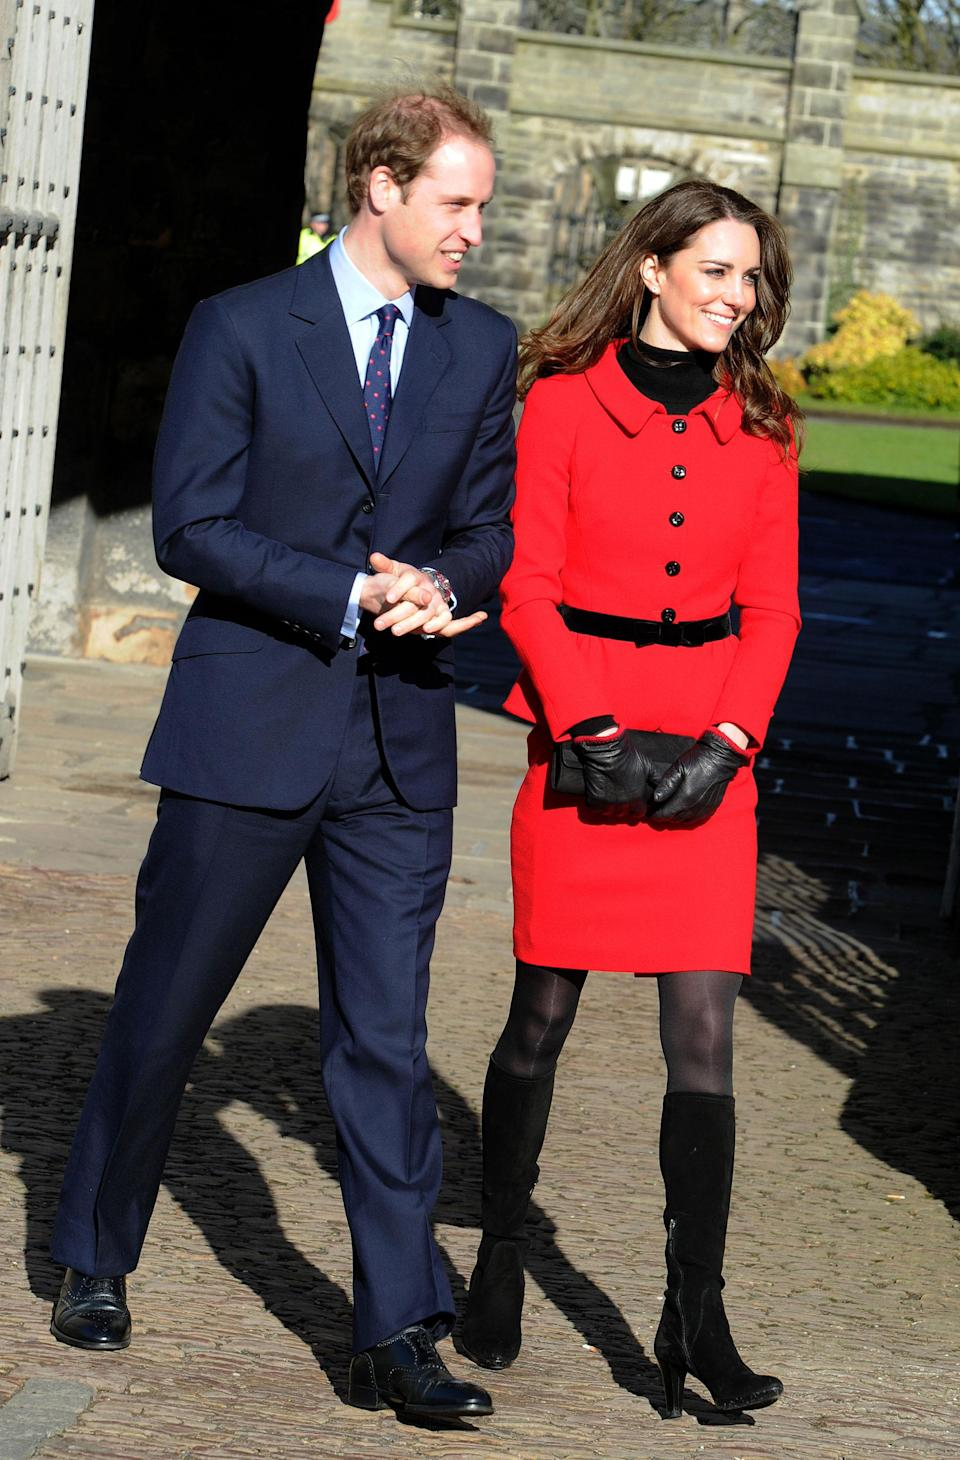 <p><b>When:</b> February 6, 2017 <b>Where:</b> <span>A visit to a London school with Prince William</span> <b>Wearing: </b>A Luisa Spagnoli red suit <b> Get the Look for Less: </b>Tahari Arthur S. Levine Splitneck Jacket and Skirt Suit Set, $84; <span>lordandtaylor.com</span></p>